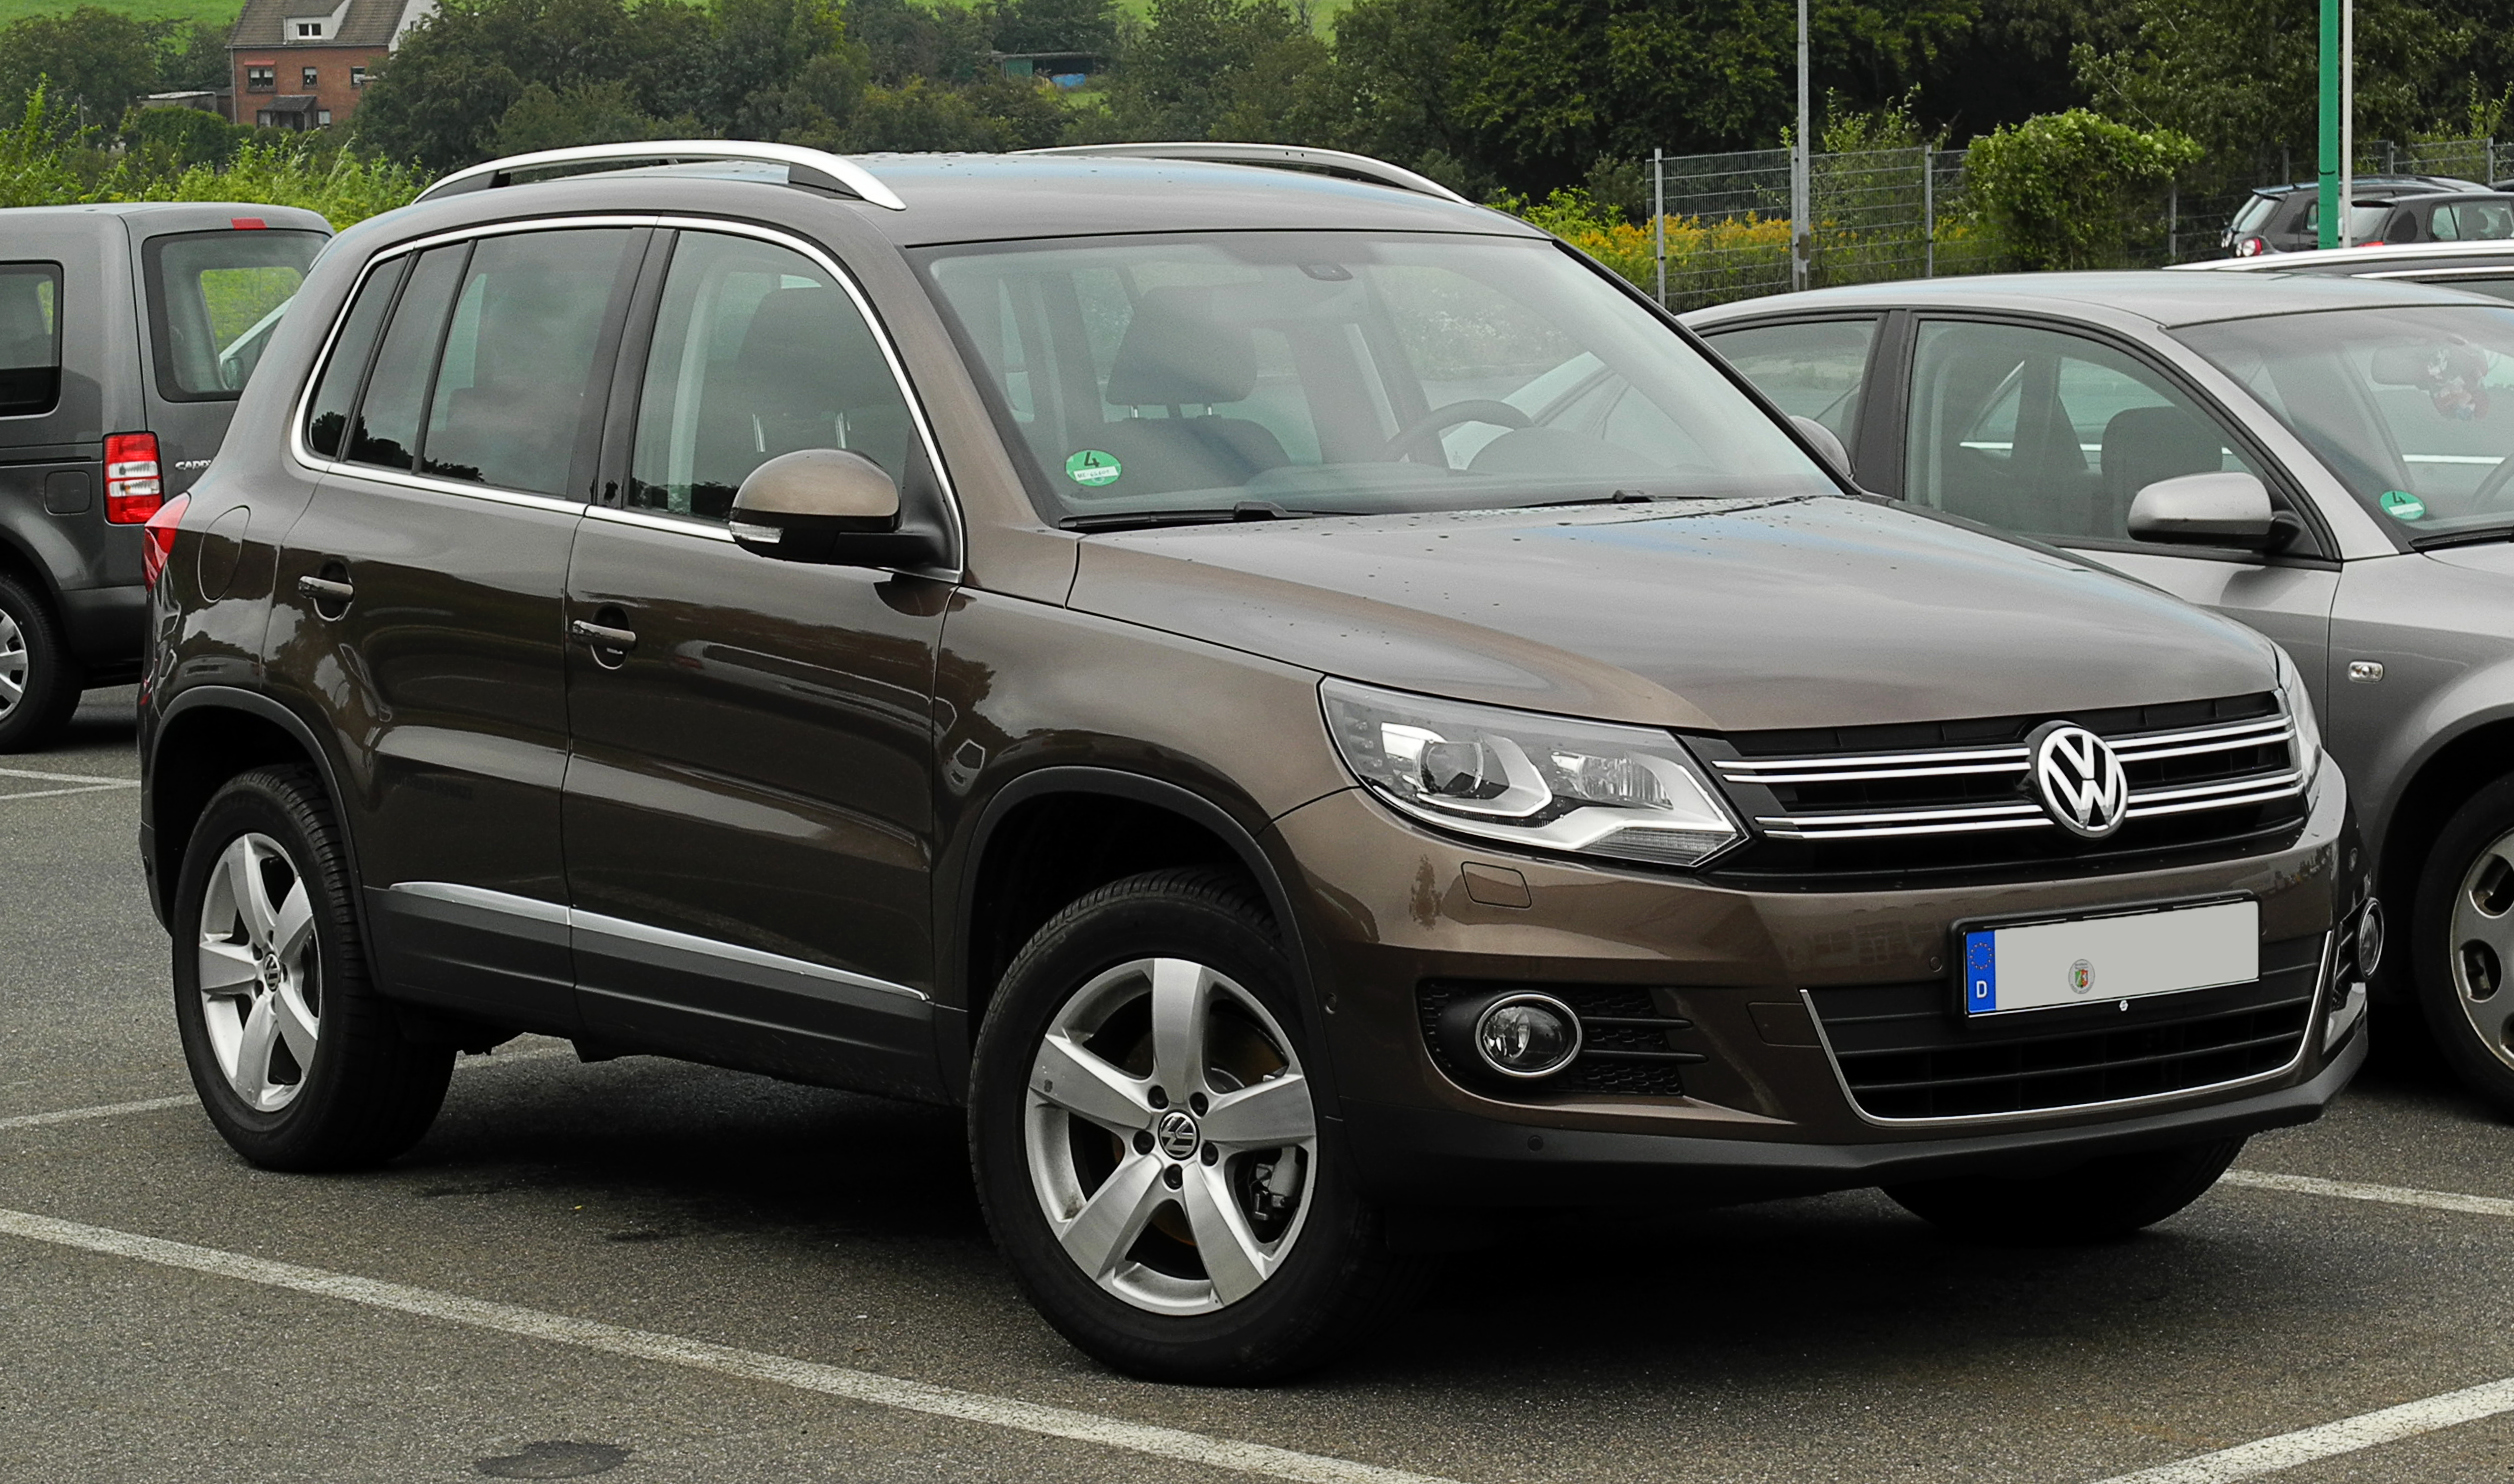 VW Tiguan in brown: www.wheelbase.uk.com/blog/10/vw-tiguan-review